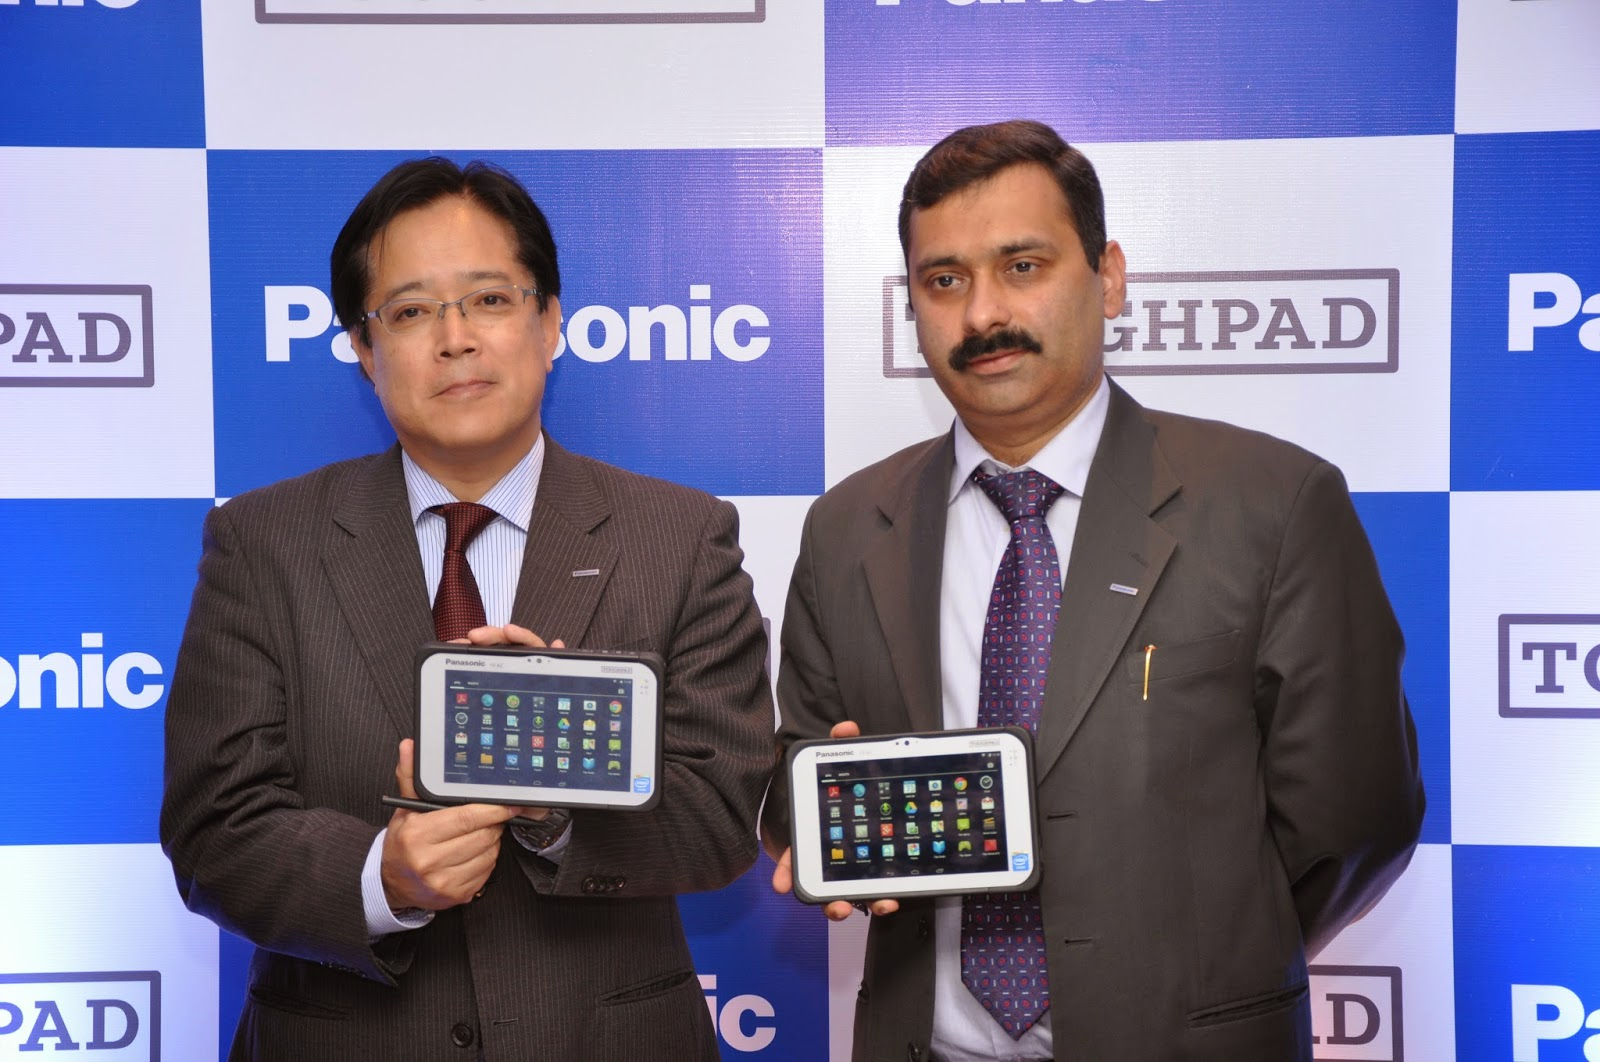 Mr. Gunjan Sachdev, General Manager, National Business Head (Toughbook Division) and Mr. Toru Hasegawa, Divisional Managing Director, Solutions Division, Panasonic India